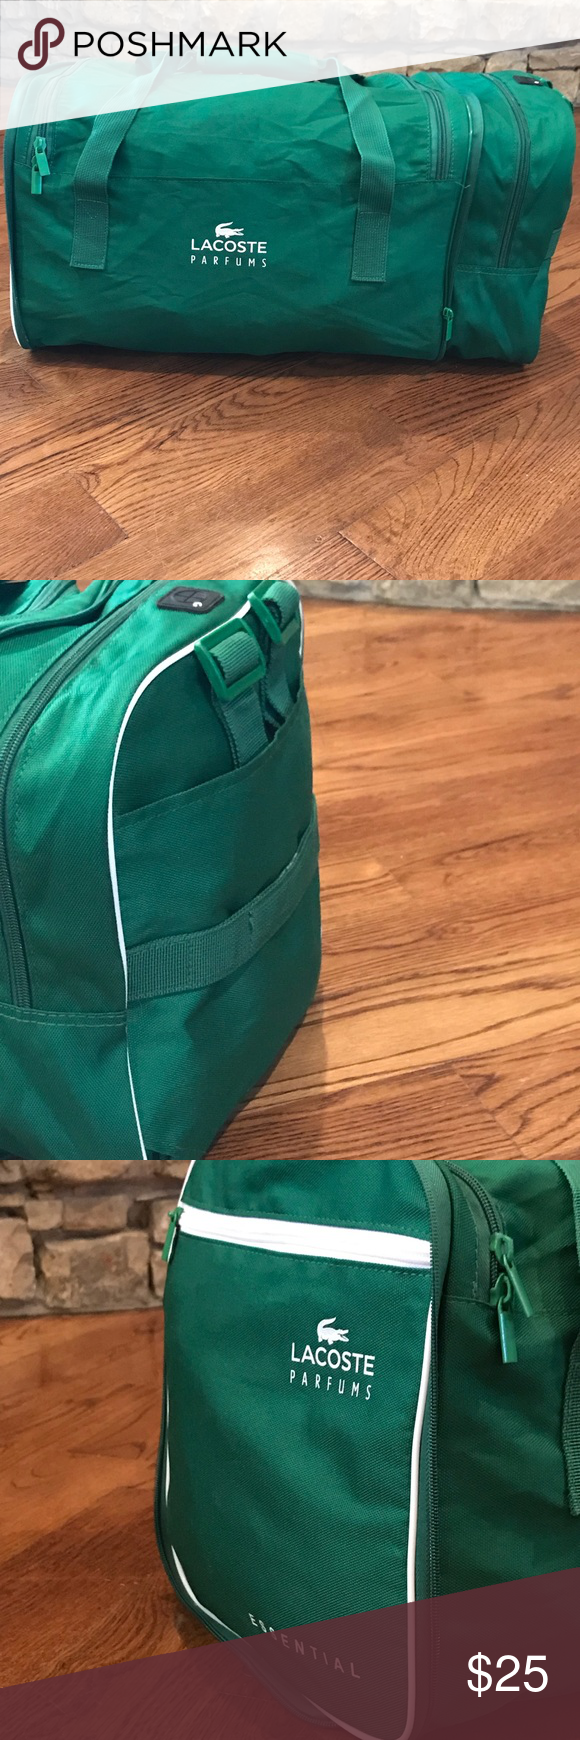 8498872c5a3b6a Lacoste Essential green white duffle bag LACOSTE ESSENTIAL GREEN WHITE  Compact Backpack SPORTS DUFFLE BAG. 20inch in length. Great for gym or  travel.